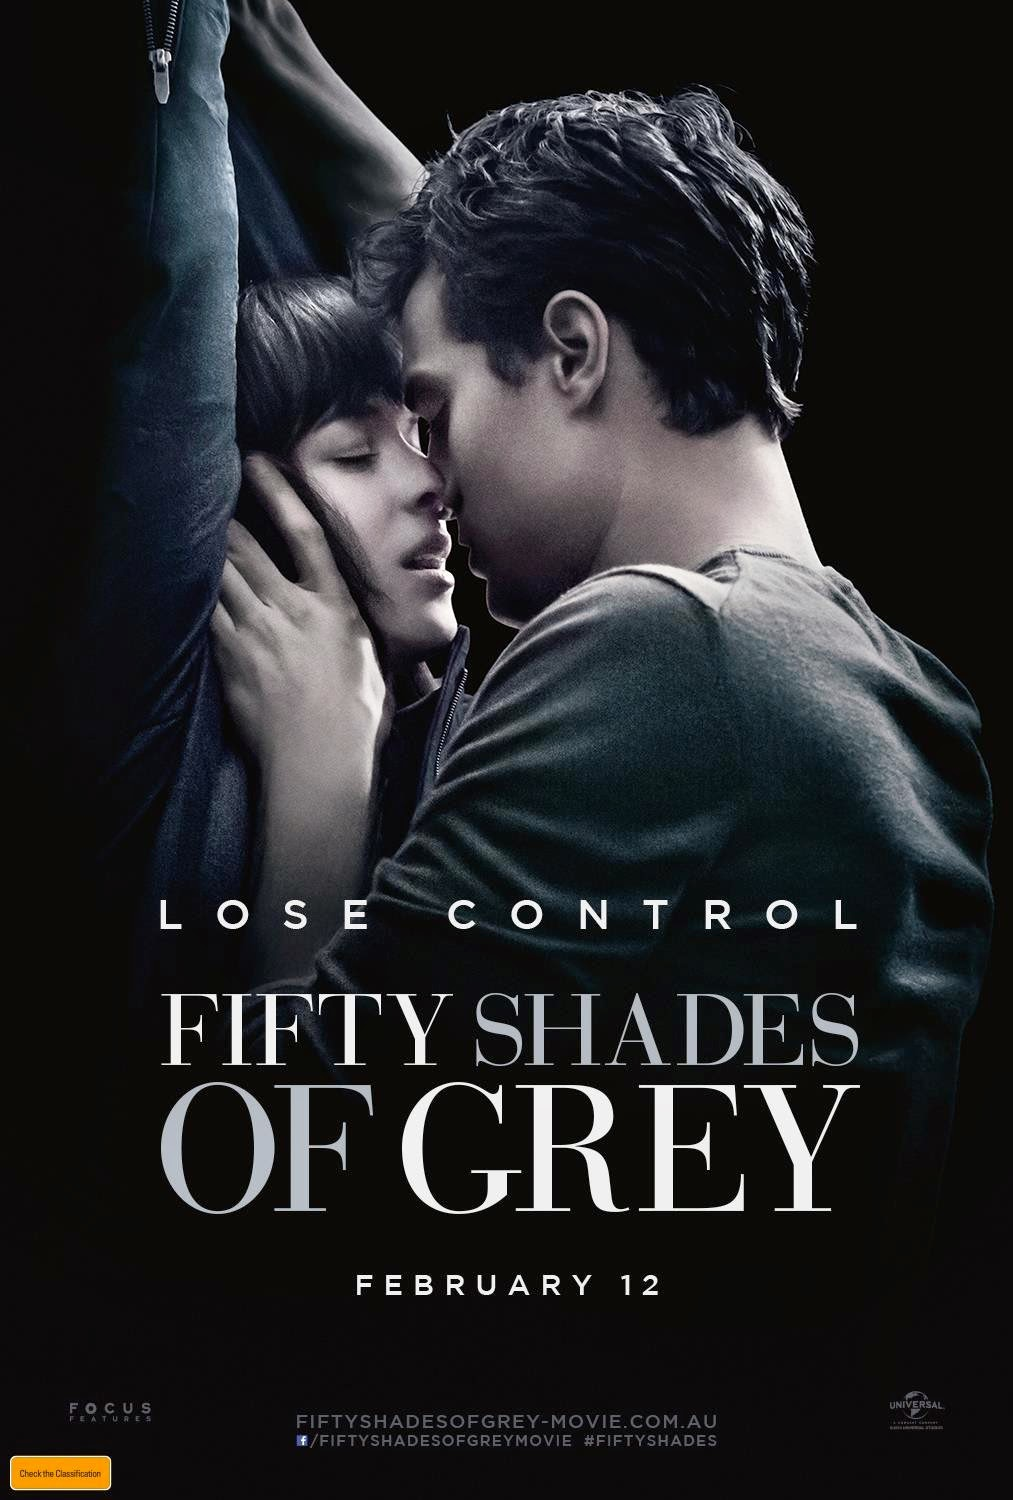 Dino's Beauty Diary - Fifty Shades of Grey (2015) Film Review